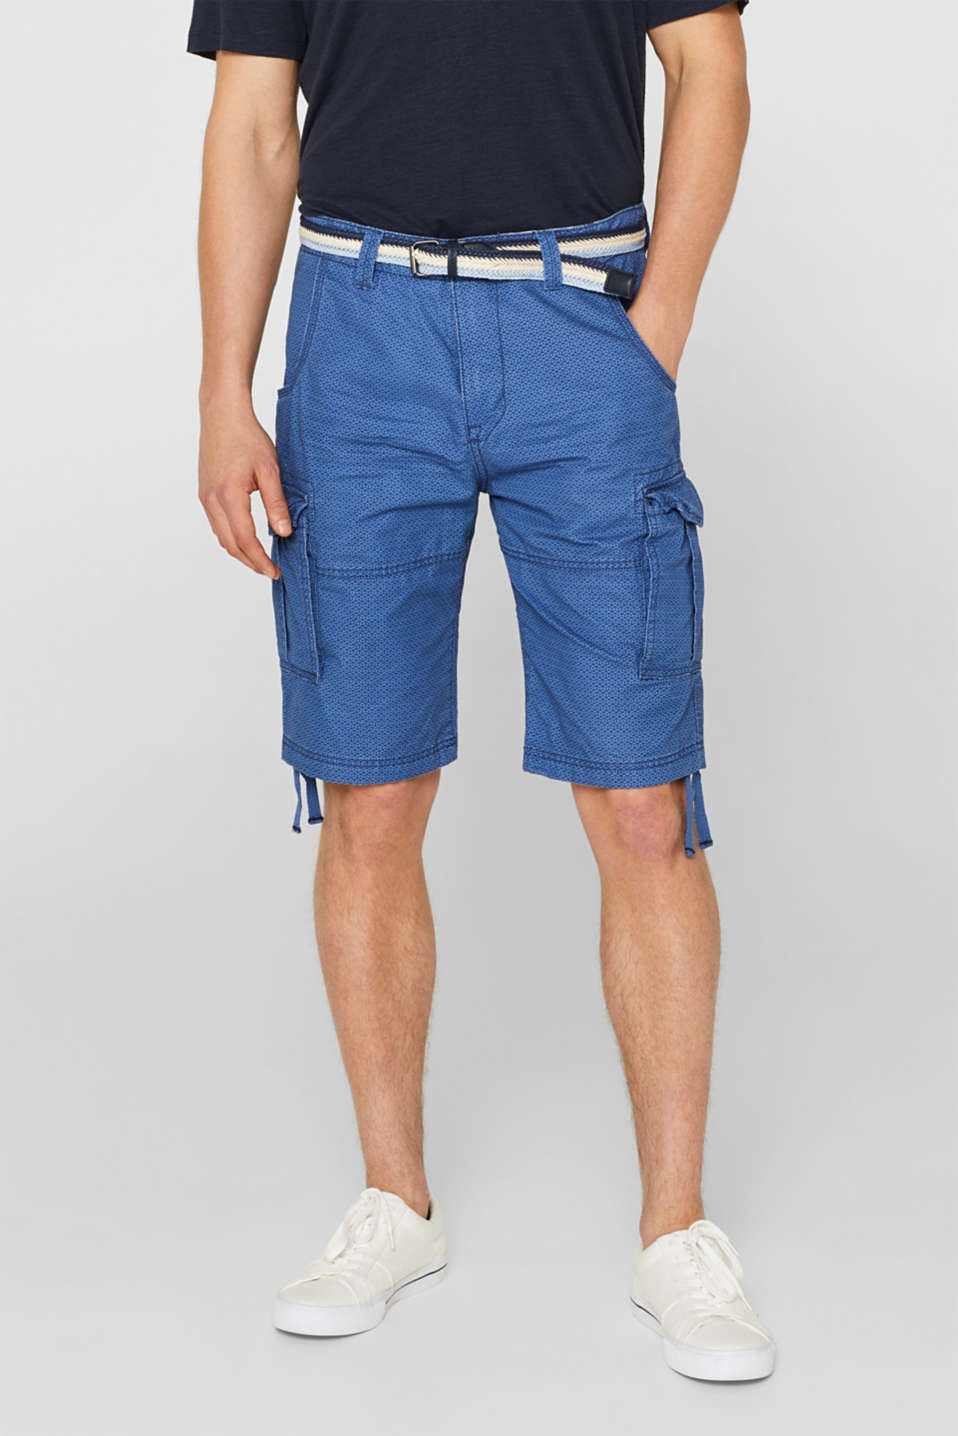 edc - Cargo shorts with all-over print, 100% cotton